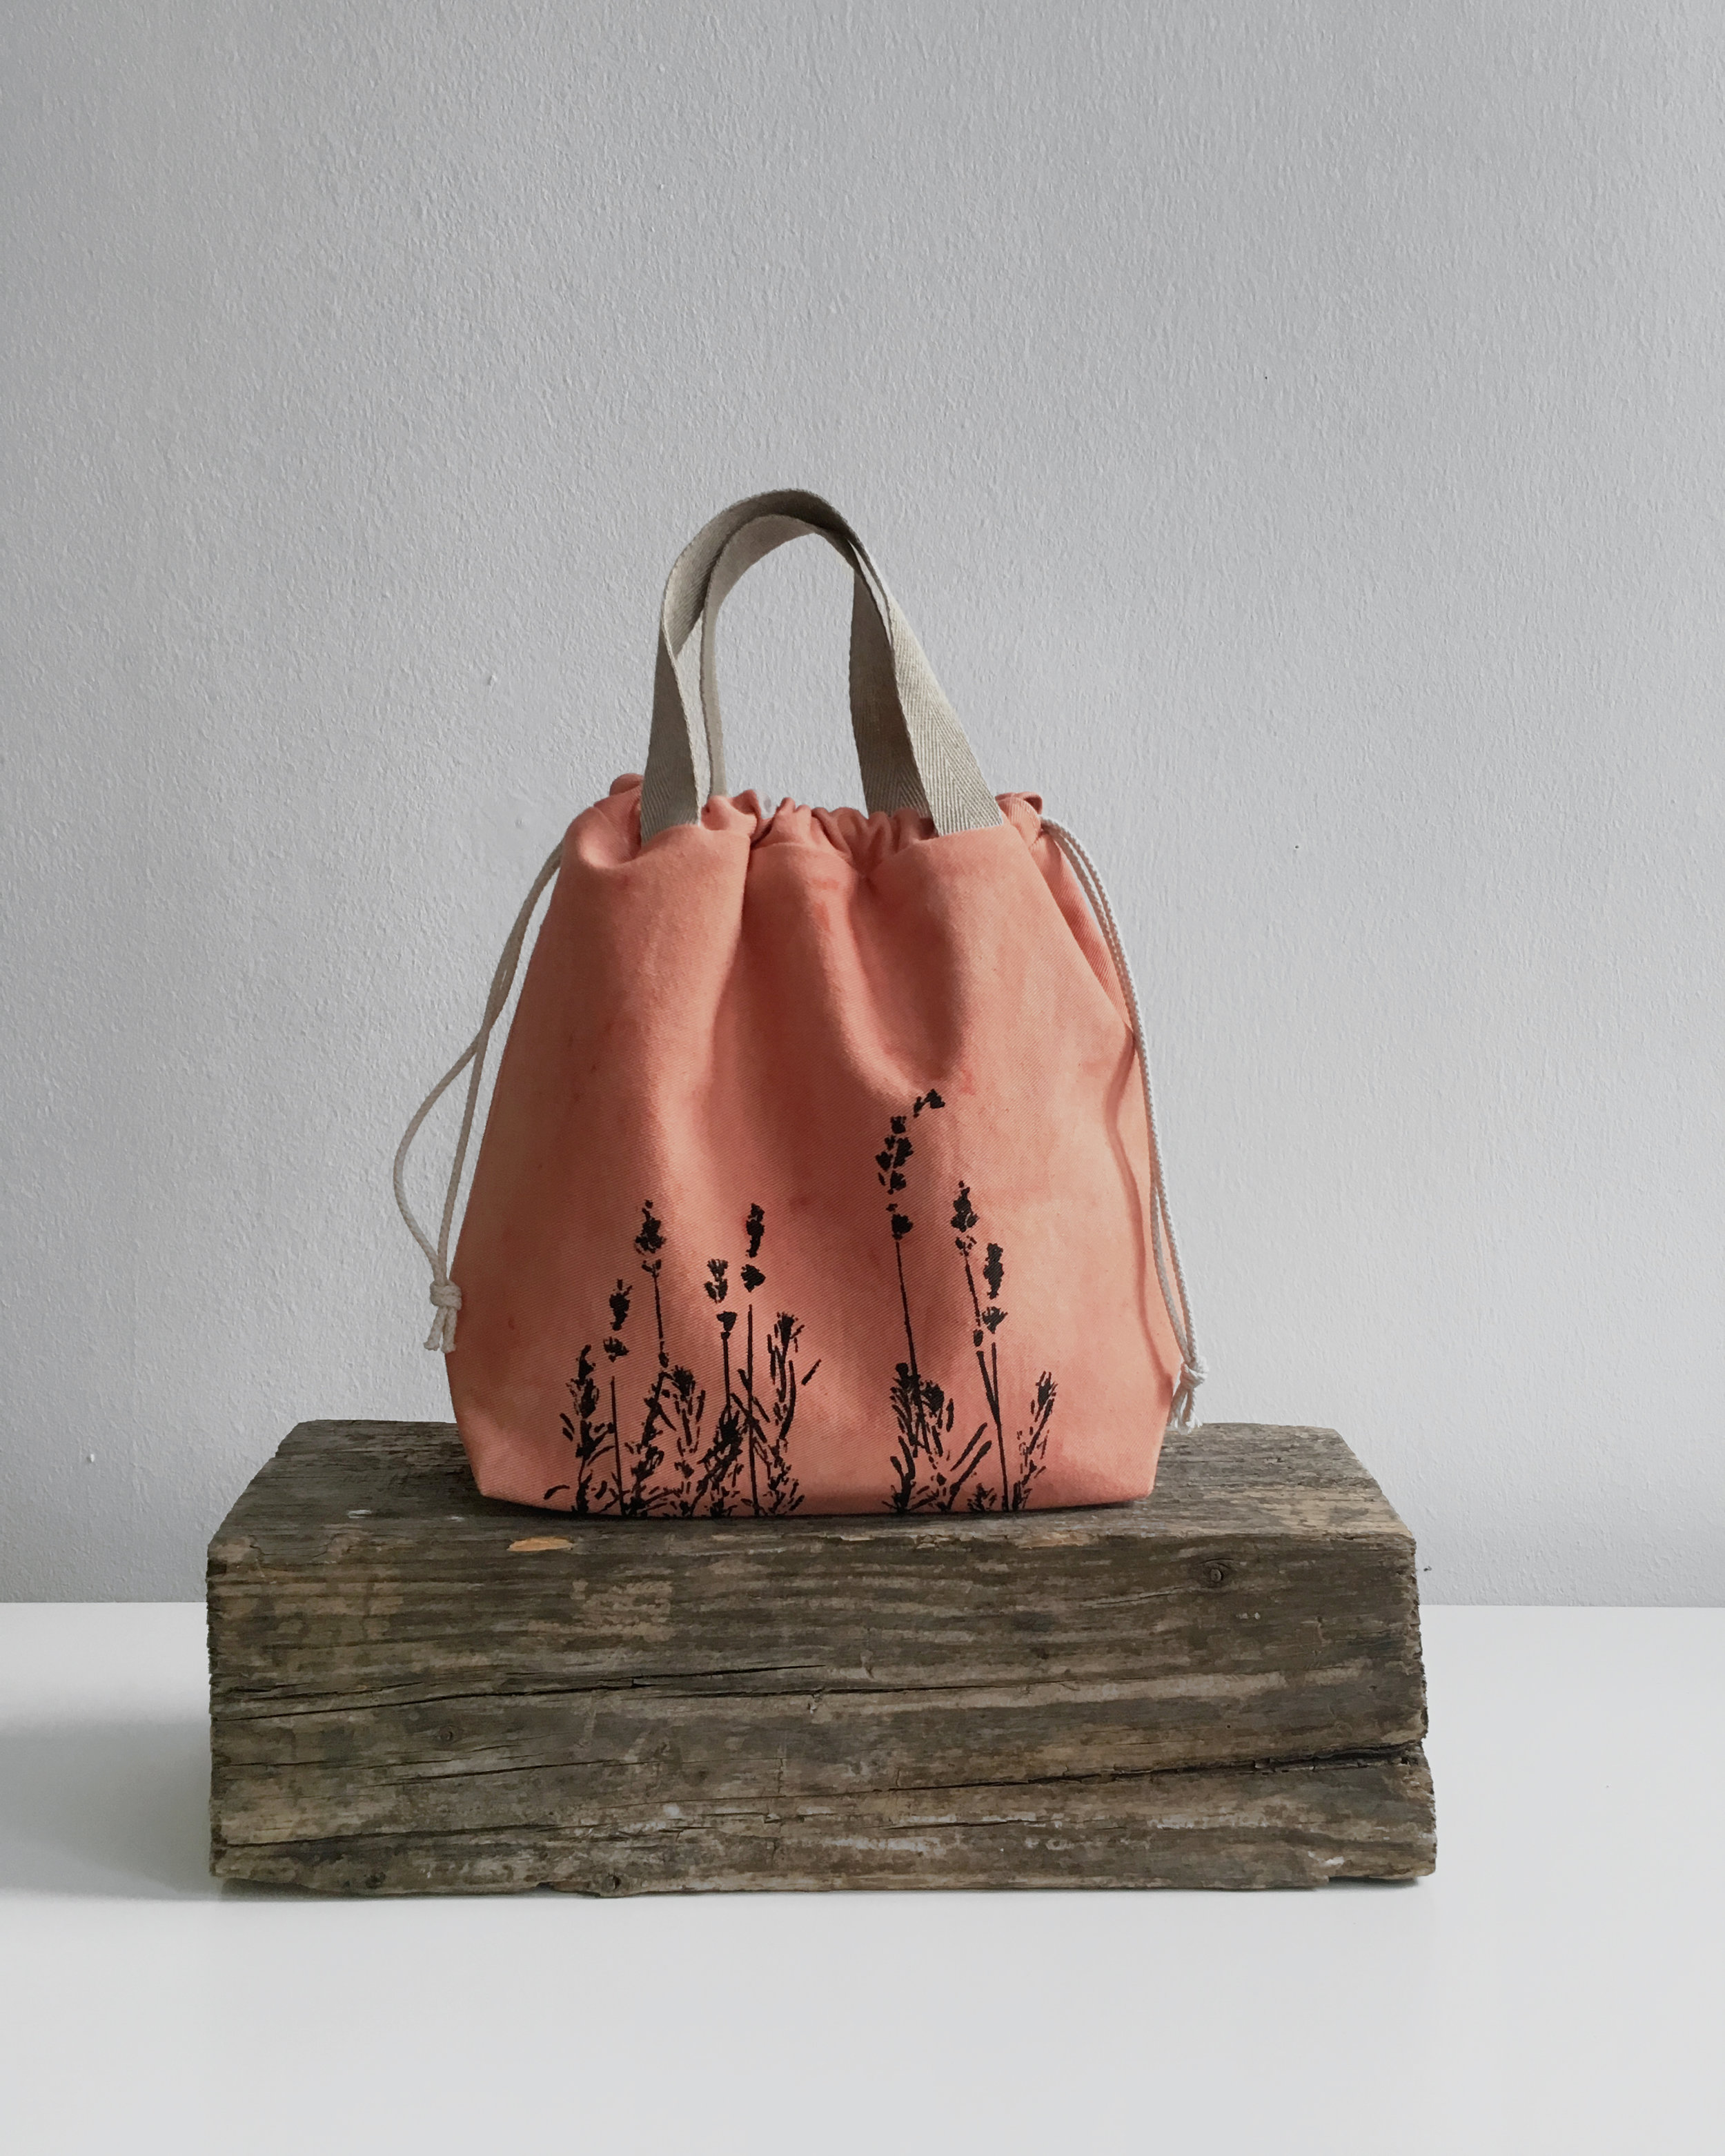 These project bags for knitters are 100% vegan, sustainable and fair - SHOP UPDATE